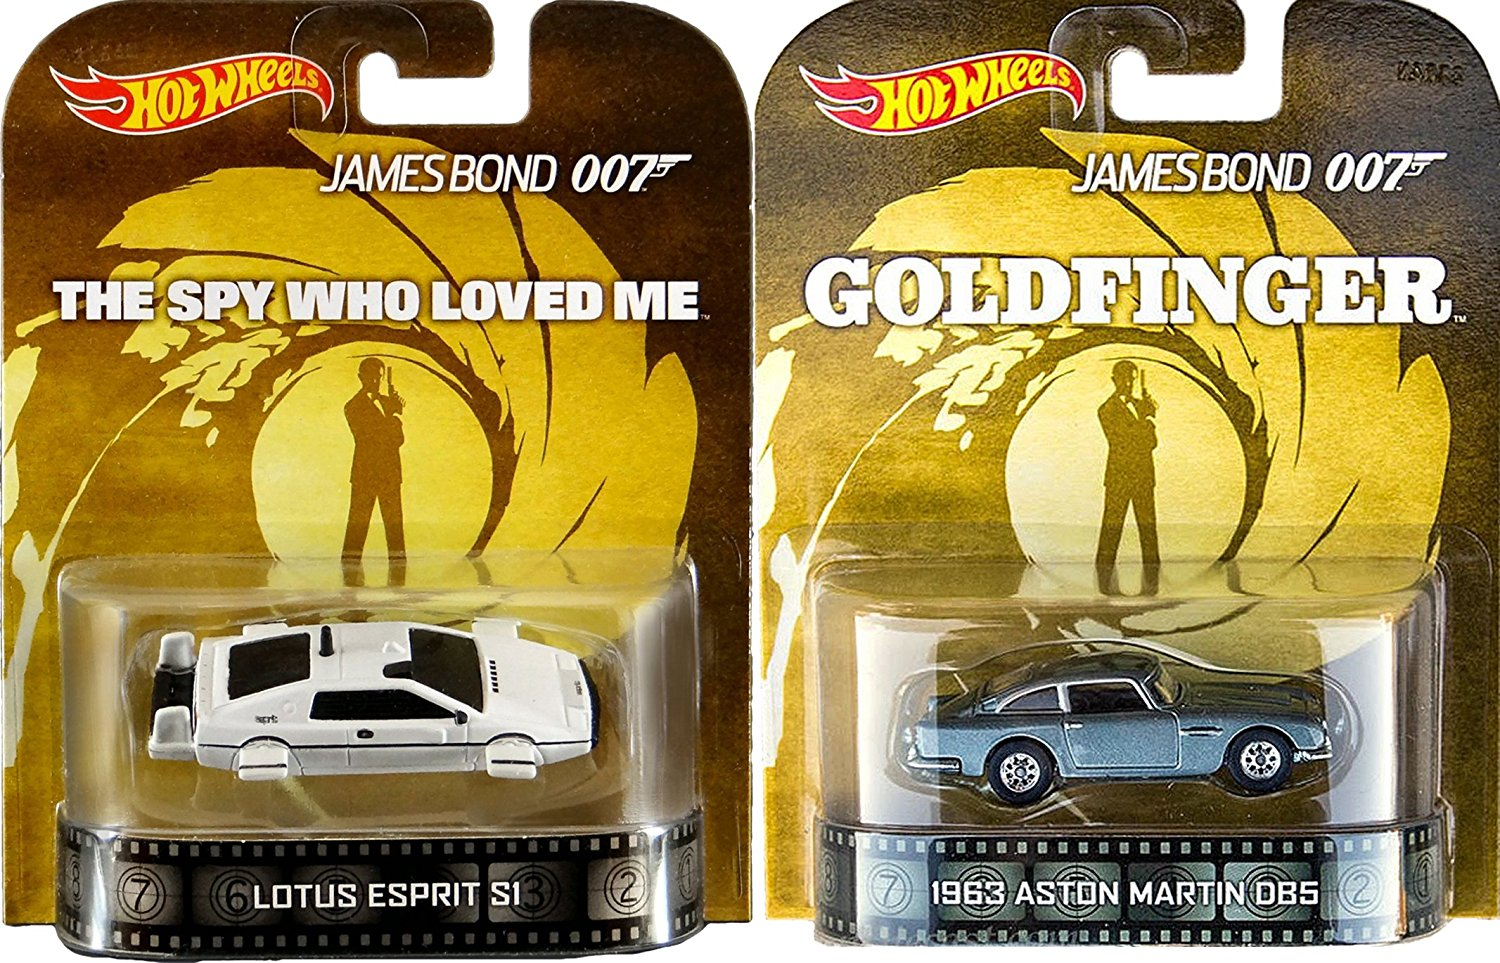 007 Goldfinger Spy Who Loved Me Retro Entertainment Hot Wheels James Bond 2 car Aston Martin DB5 & Lotus Underwater Esprit